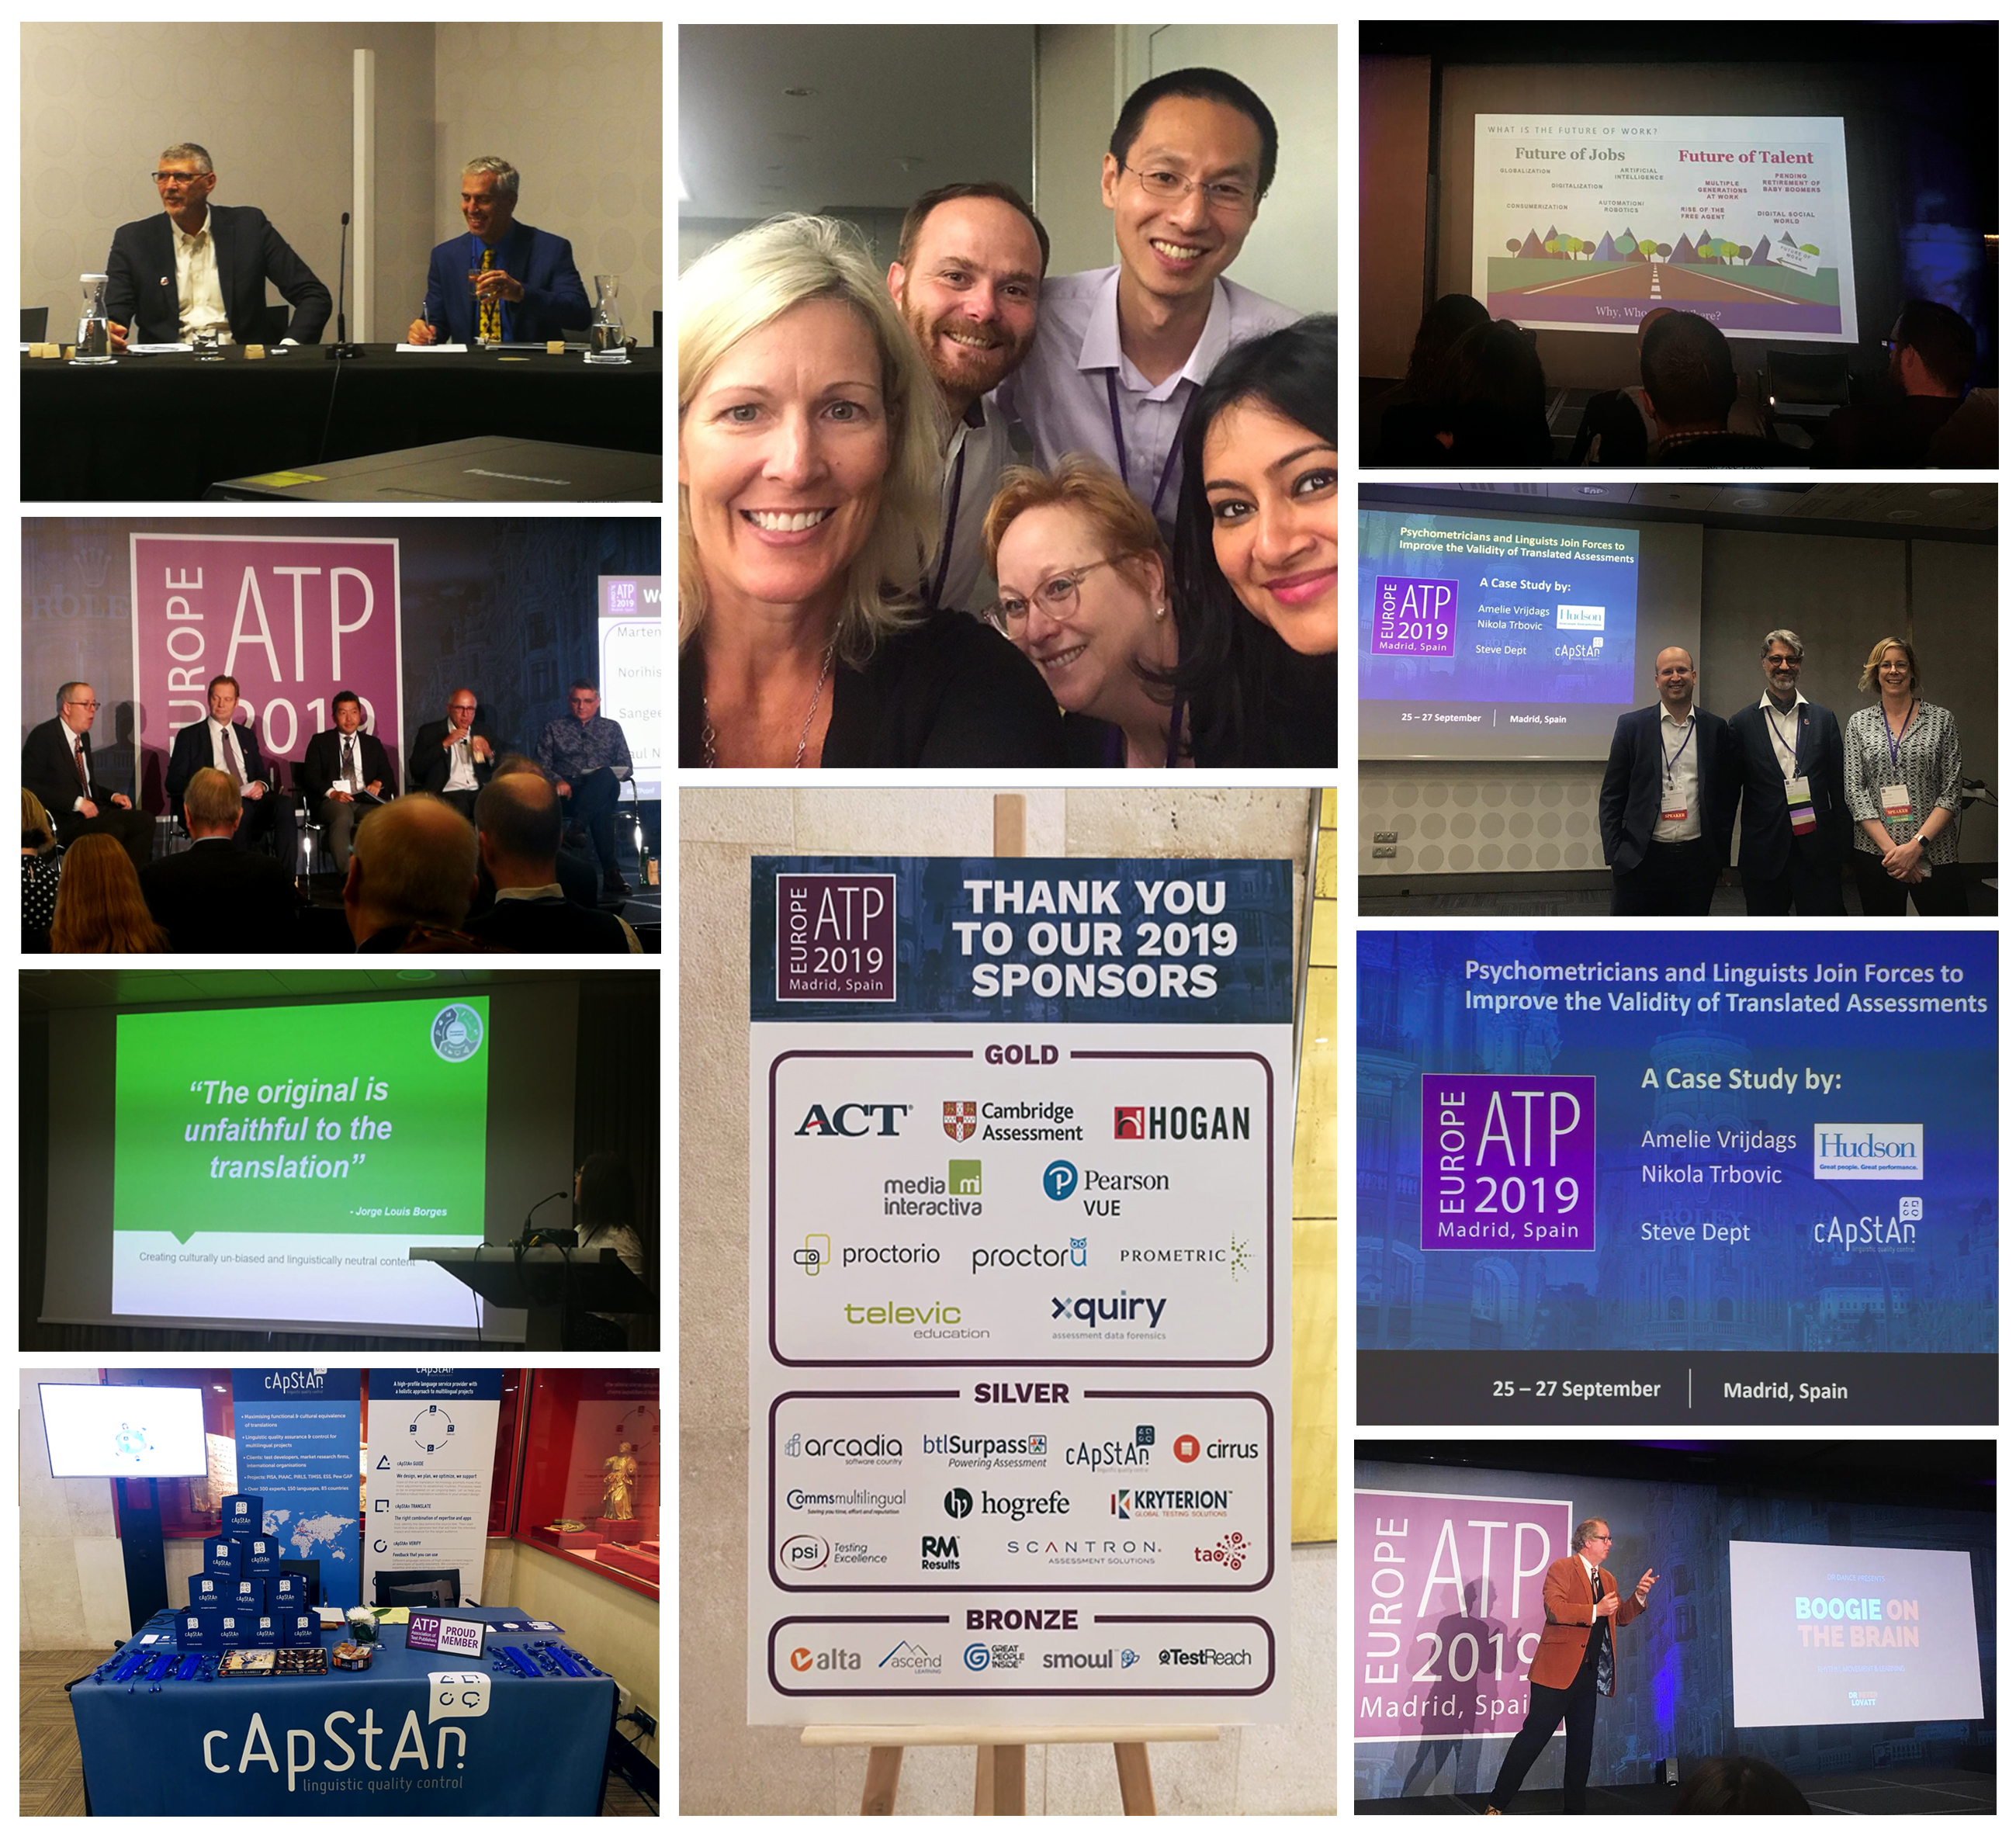 Highlights from the E-ATP Conference in Madrid